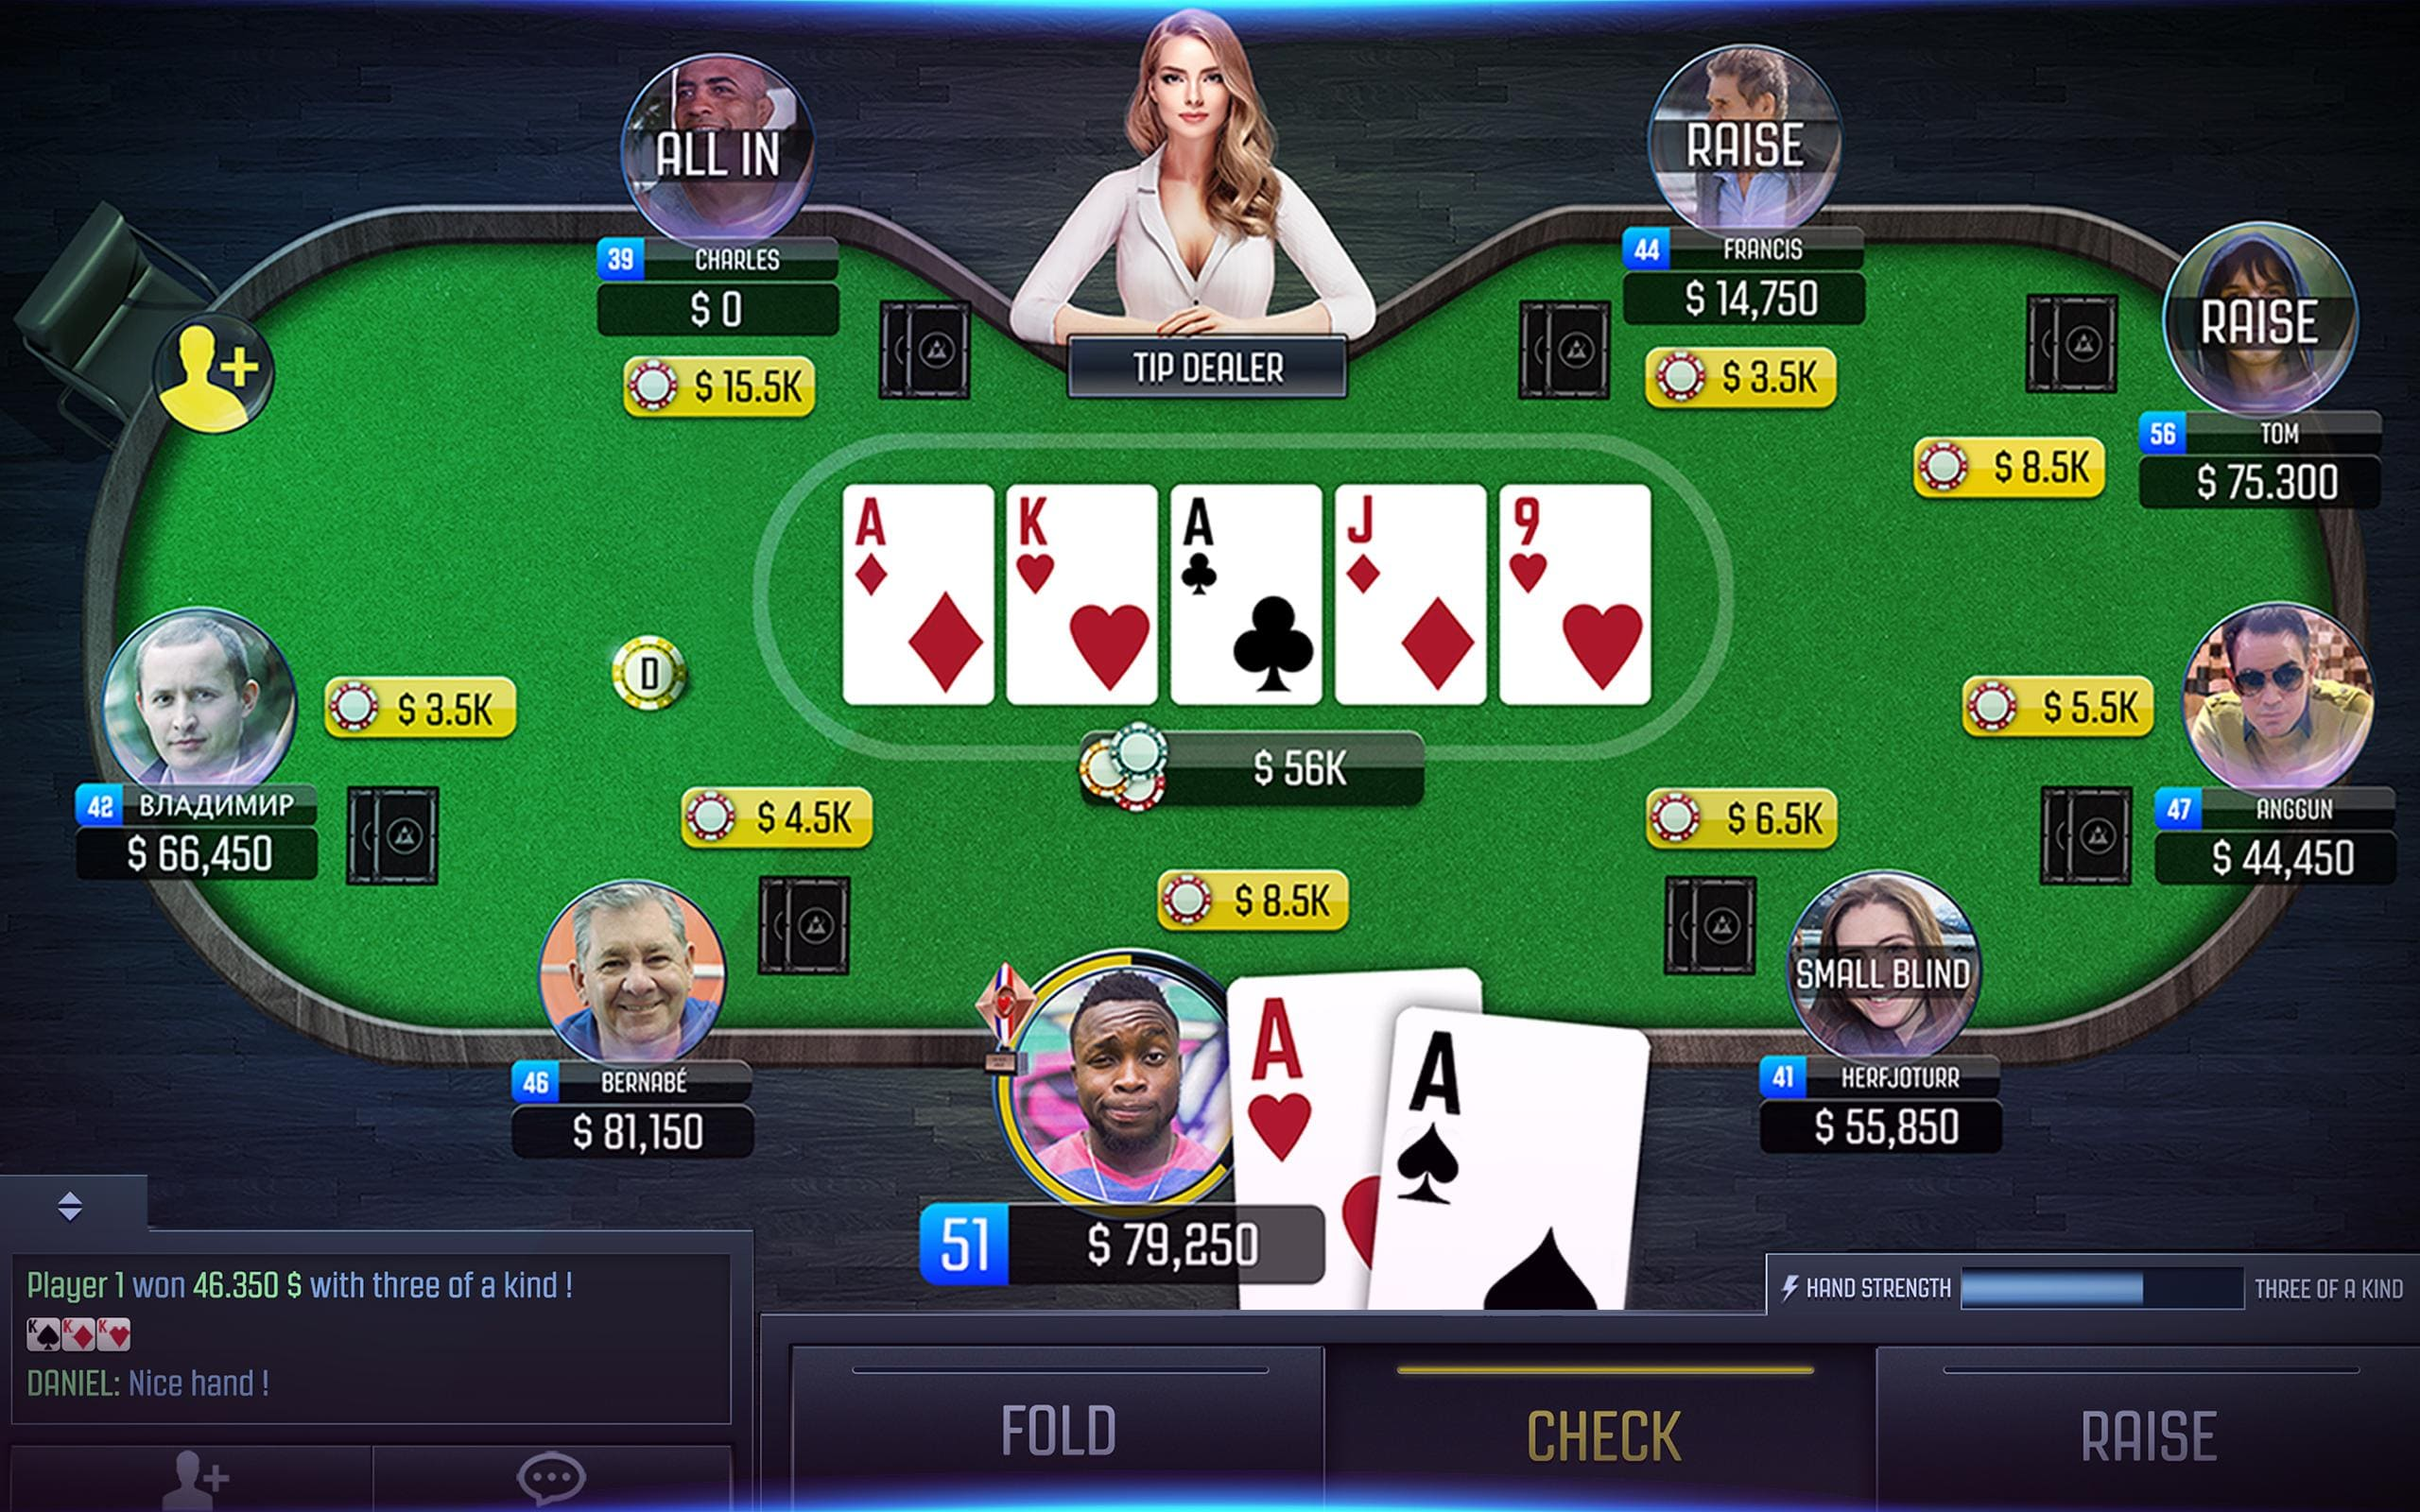 Game Patterns of Online Gambling Players in Playing